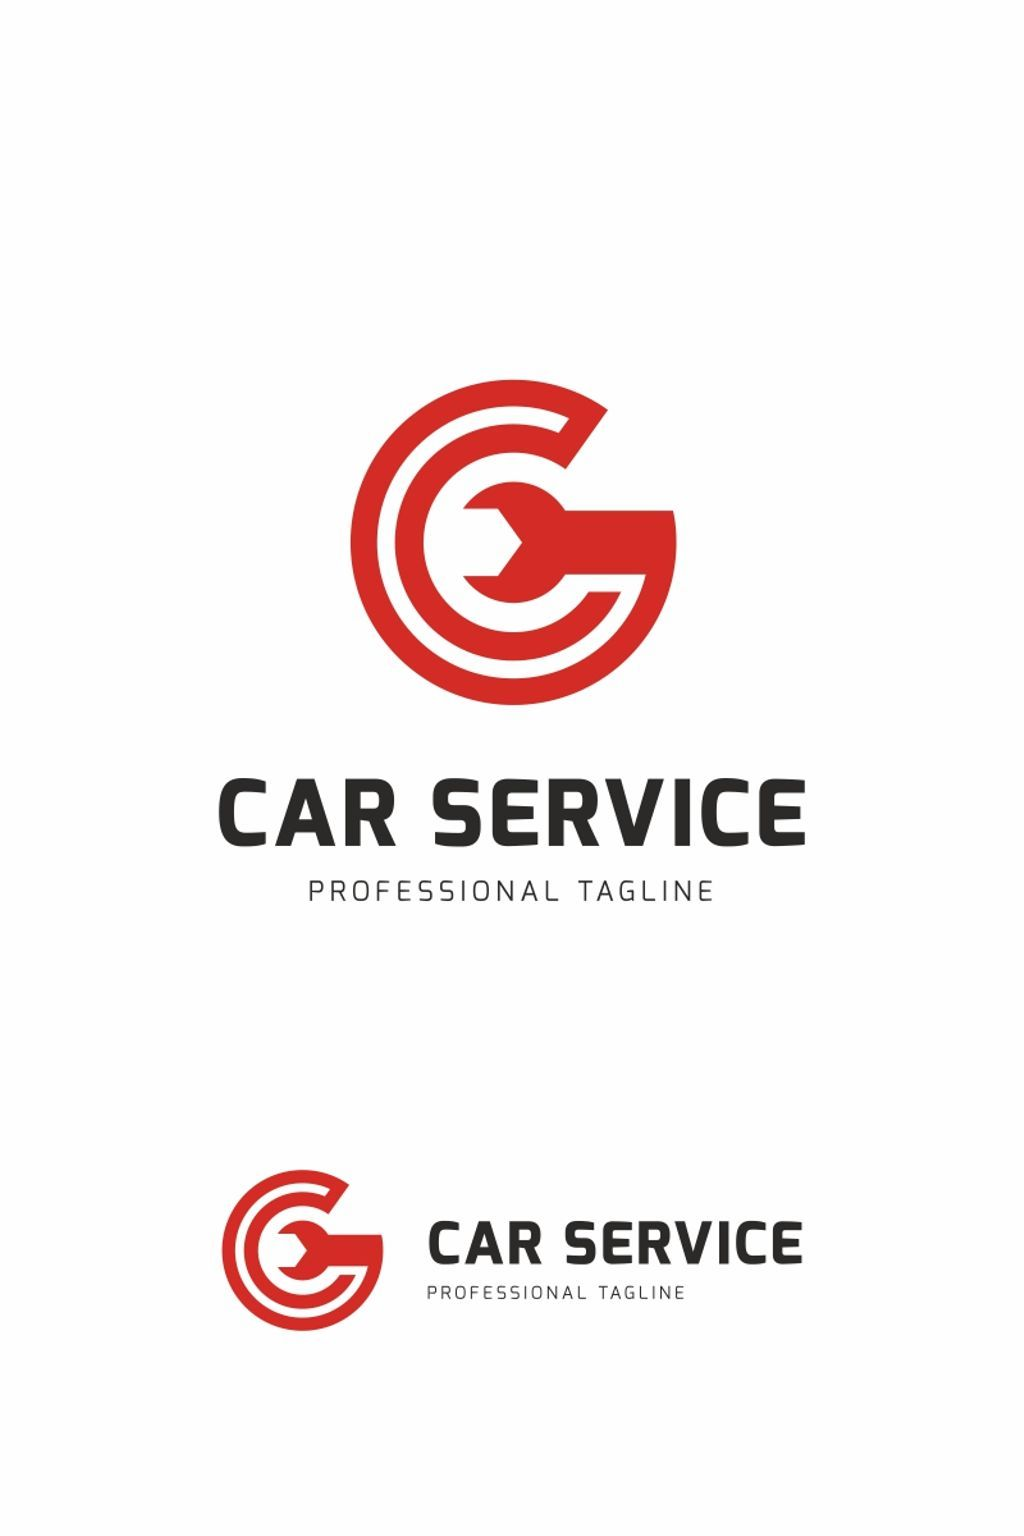 FastnSure company provides the facilities like, Towing Car Service ,Car repair Services , Vehicle break down Service and much more about transport Service they are available 24*7 .Call and receive the service anytime anywhere. And they are best carrier s